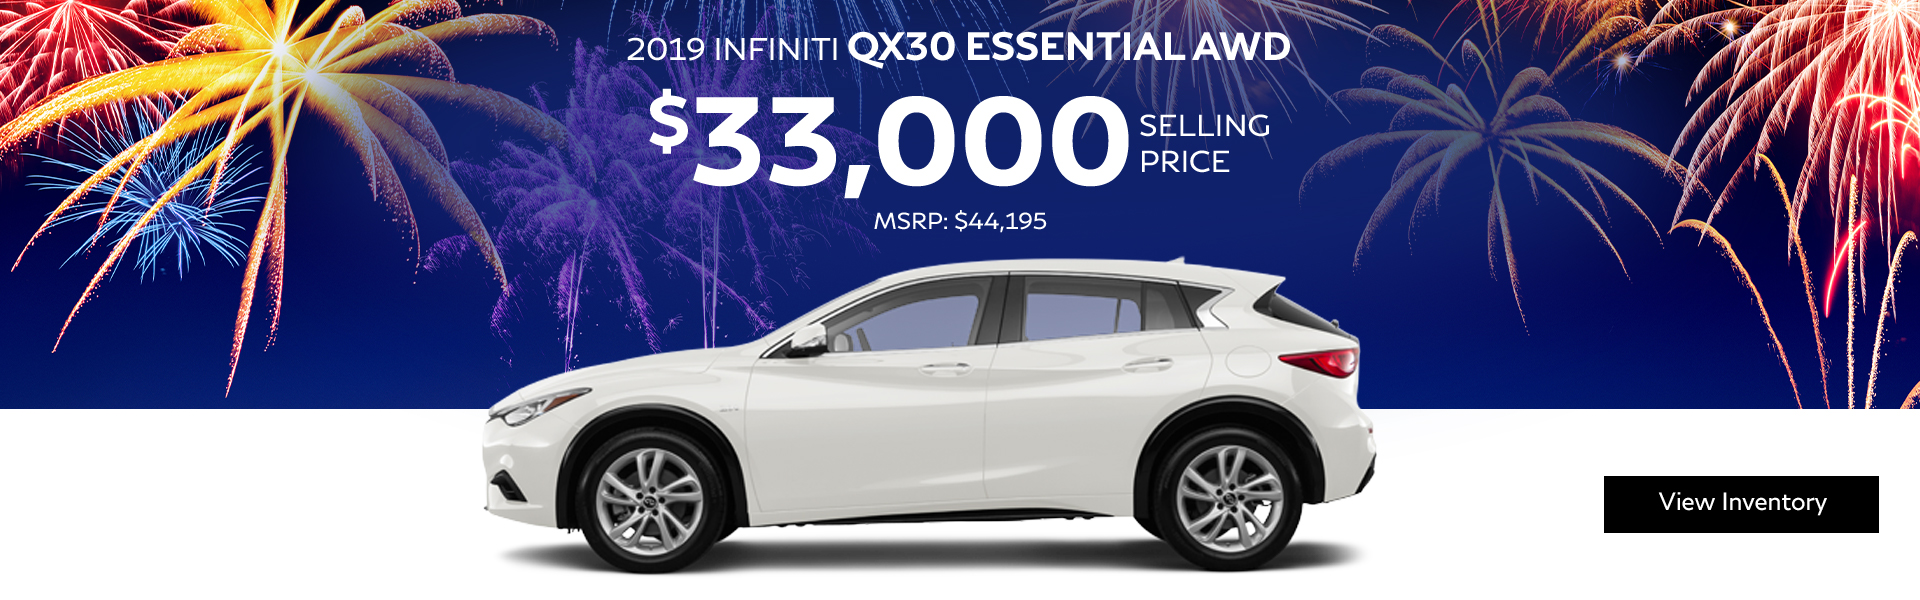 QX30 - Purchase offer